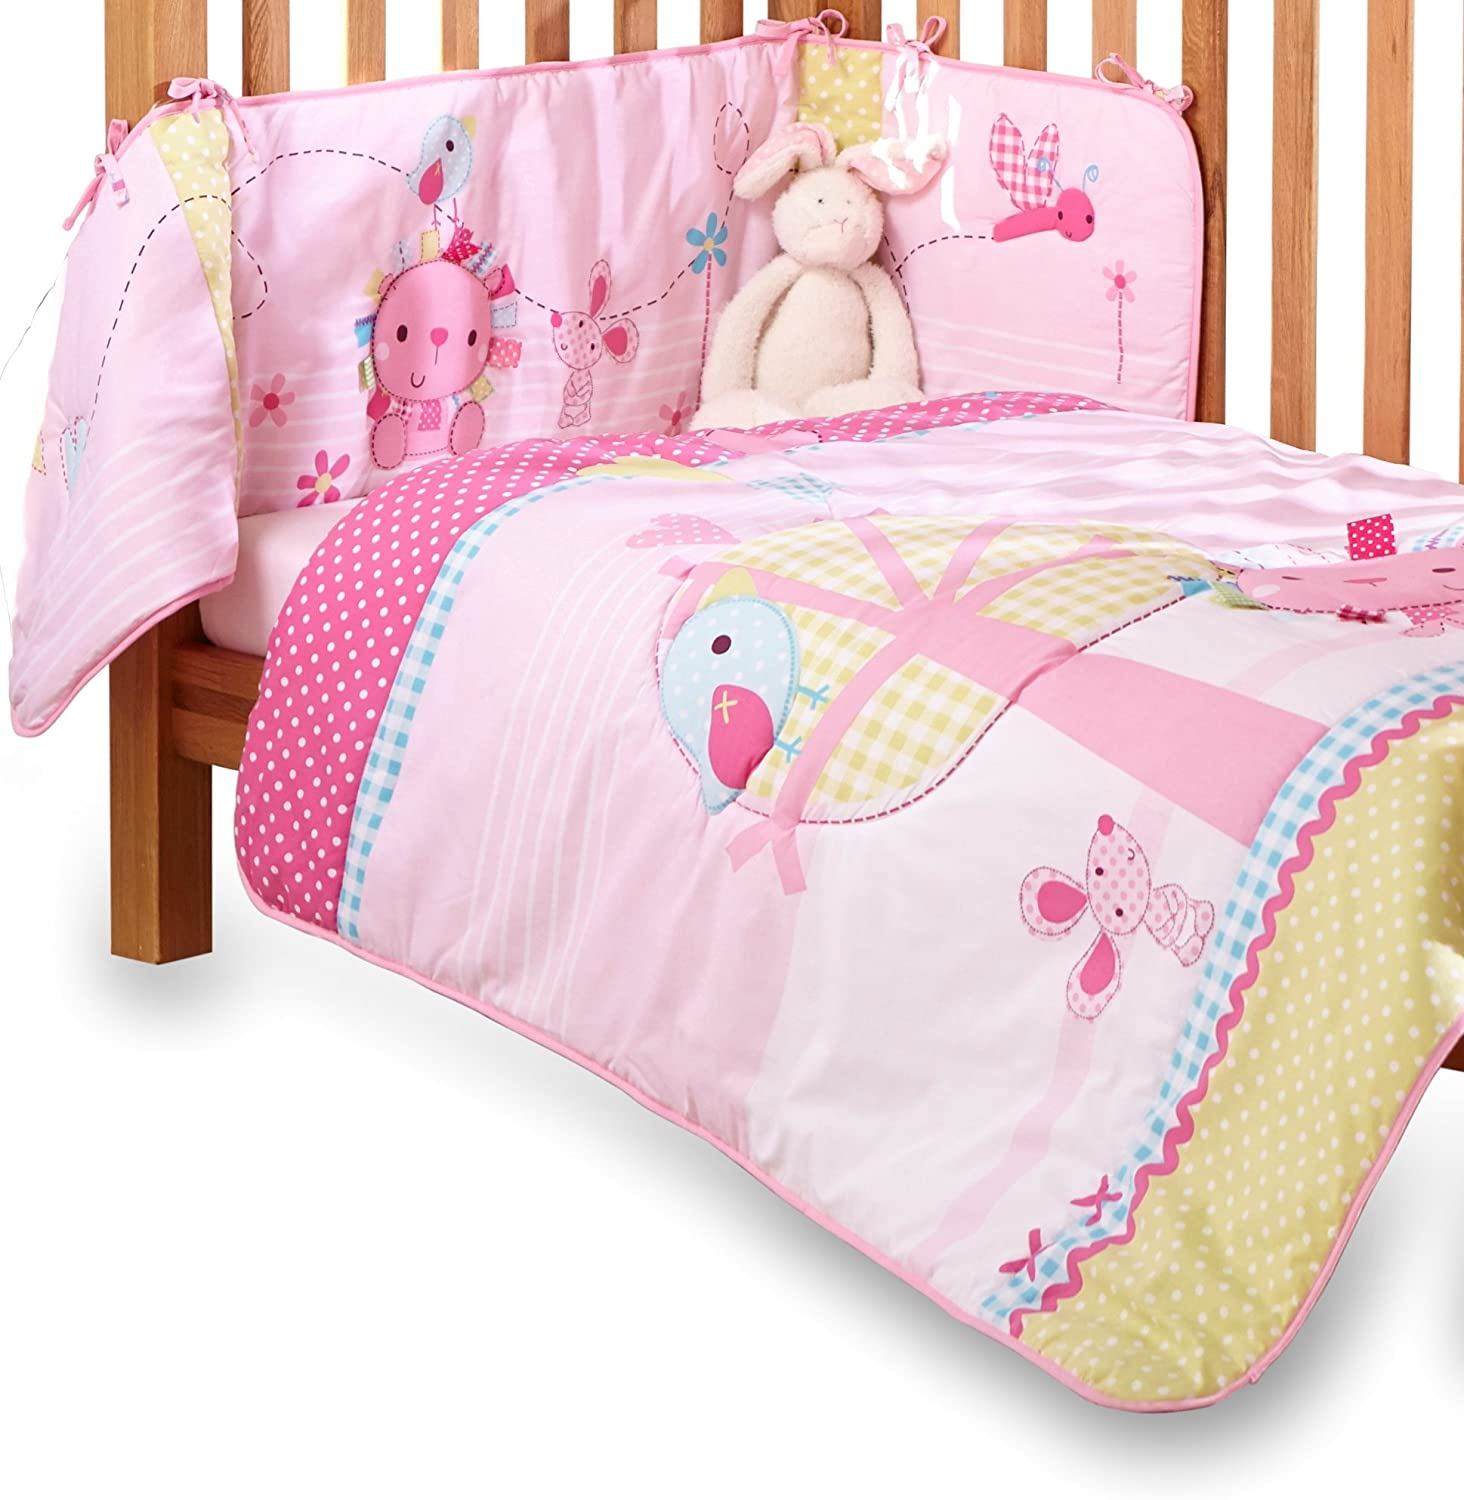 Clair de Lune Lottie & Squeek Cot/ Cot Bed Quilt and Bumper Bedding Set (Pink) CL5000